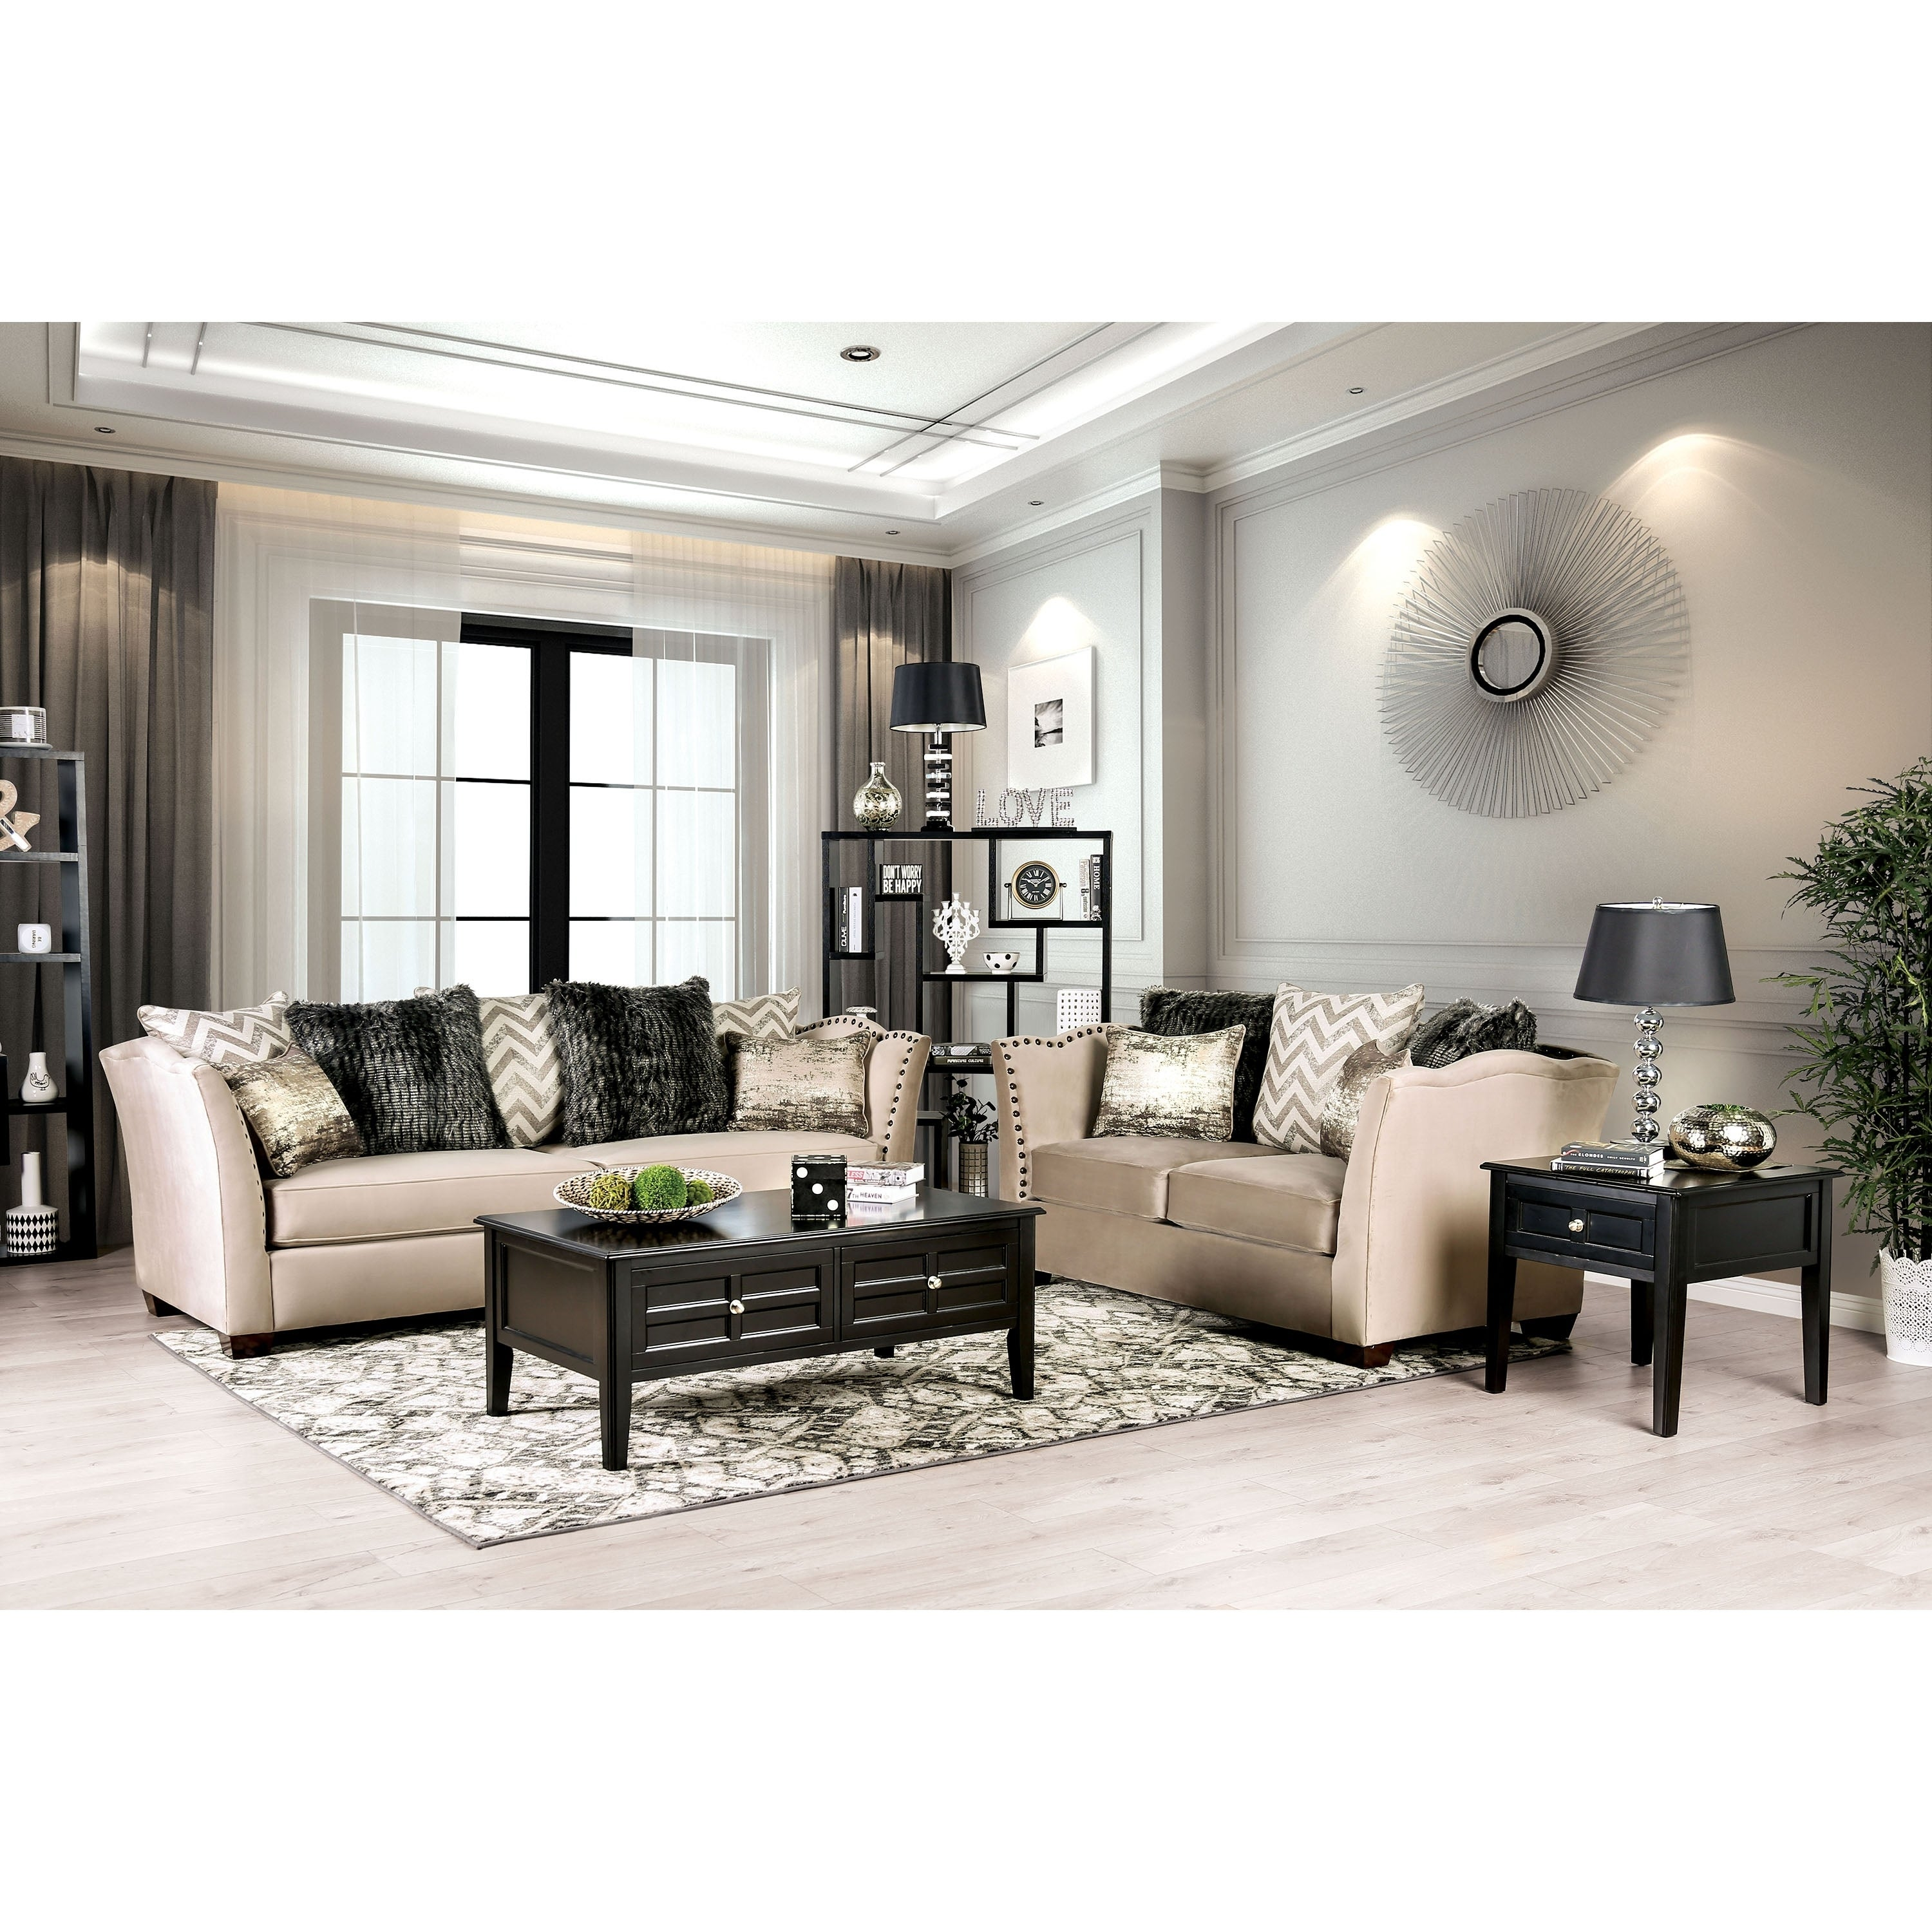 Silver Orchid Bennett 2-piece Nailhead Living Room Set